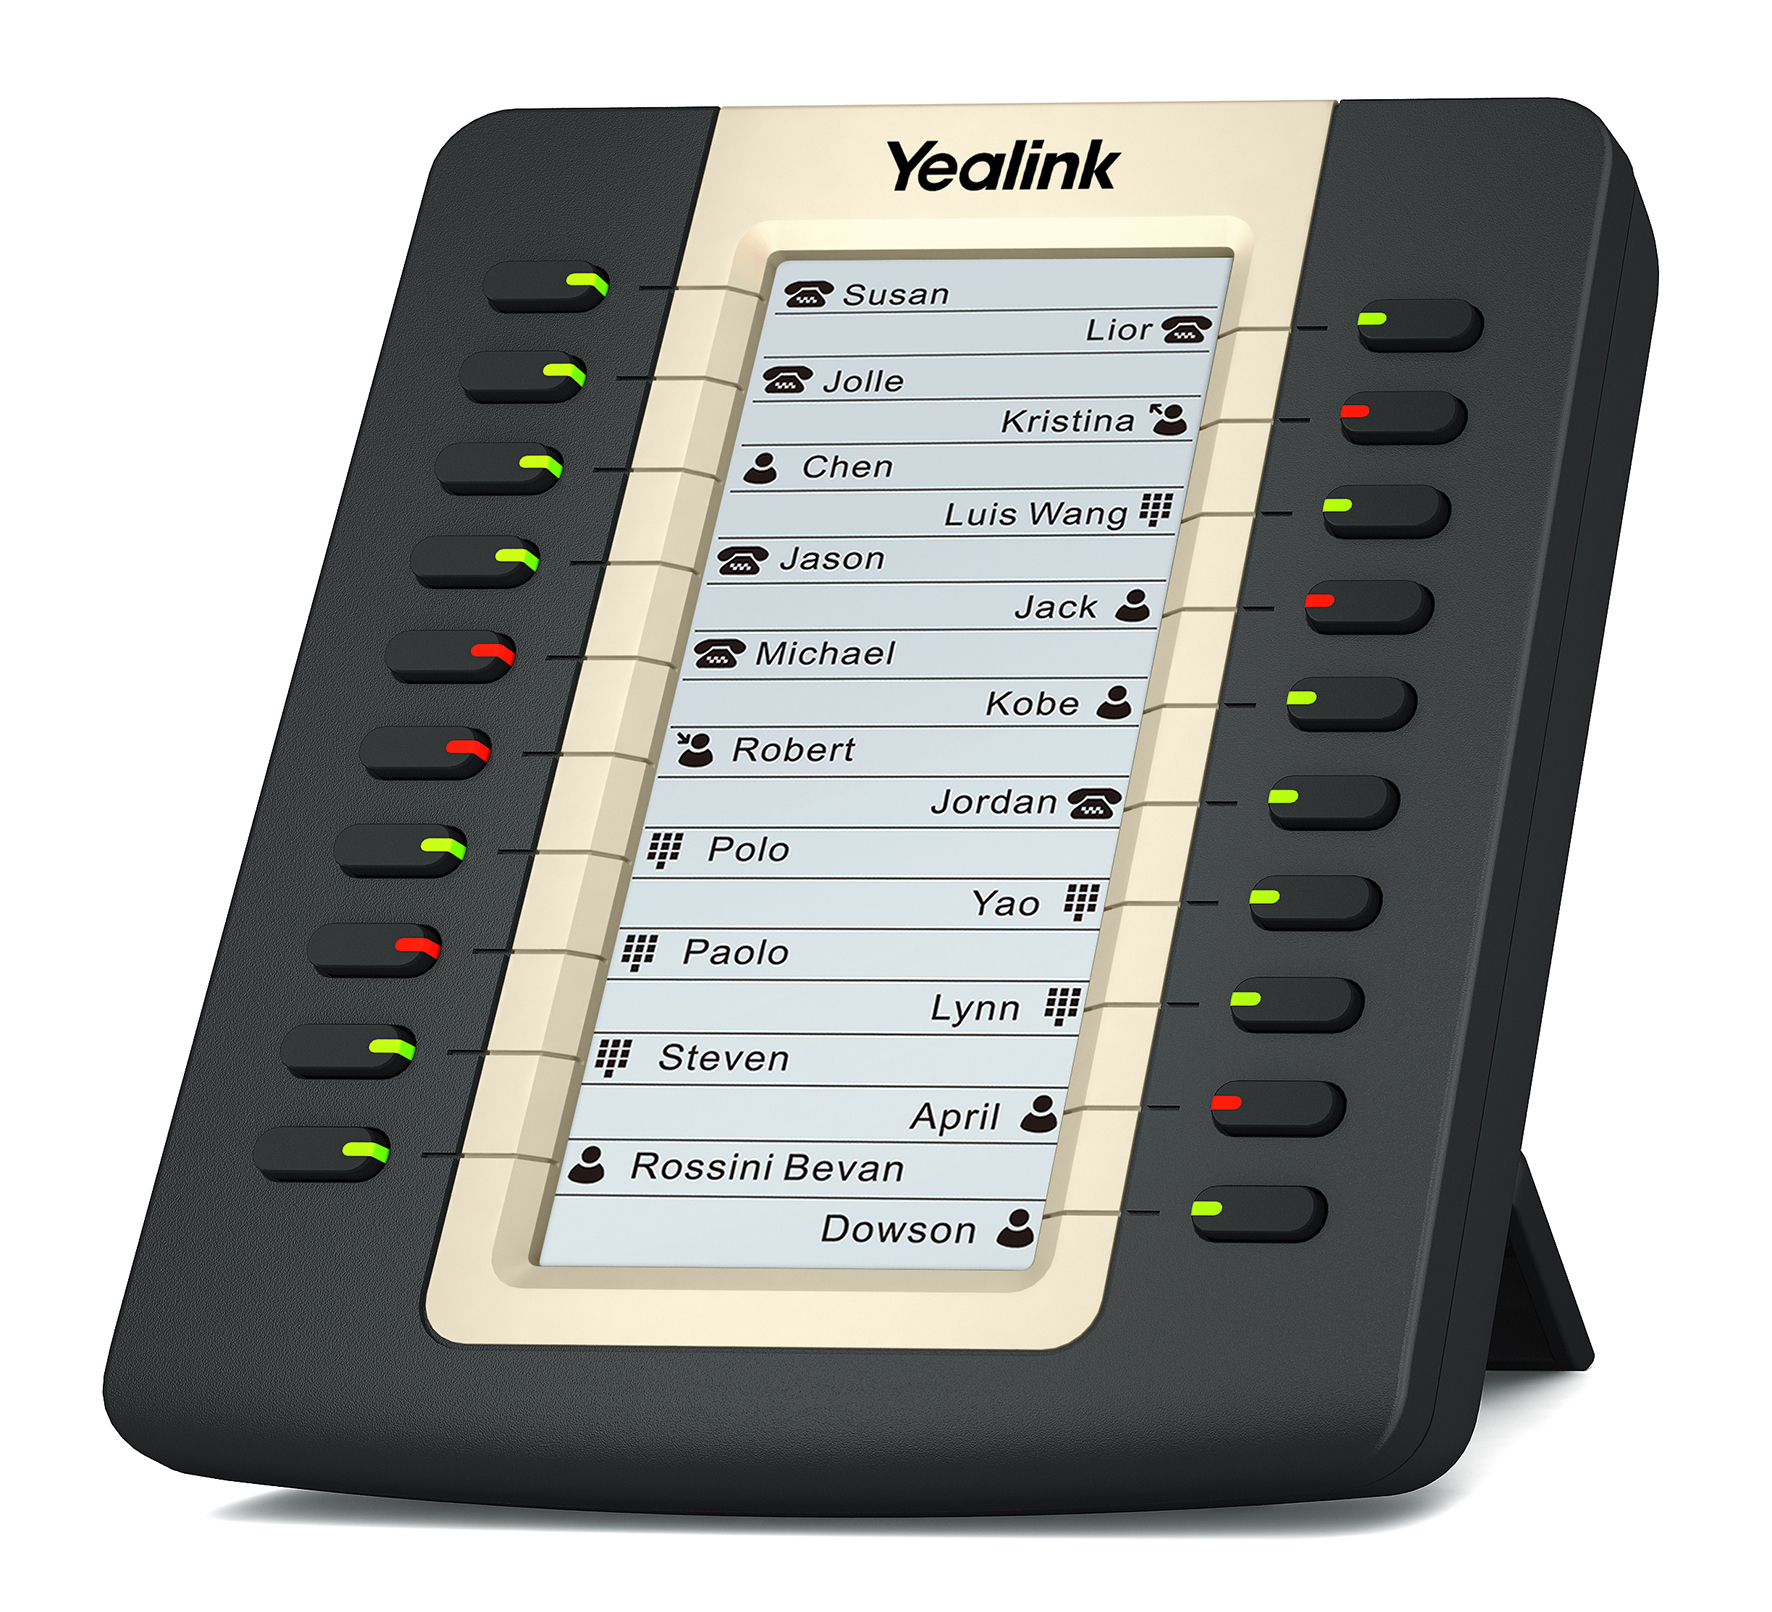 Yealink Exp20 Expansion Module For T27p And T29g Provu